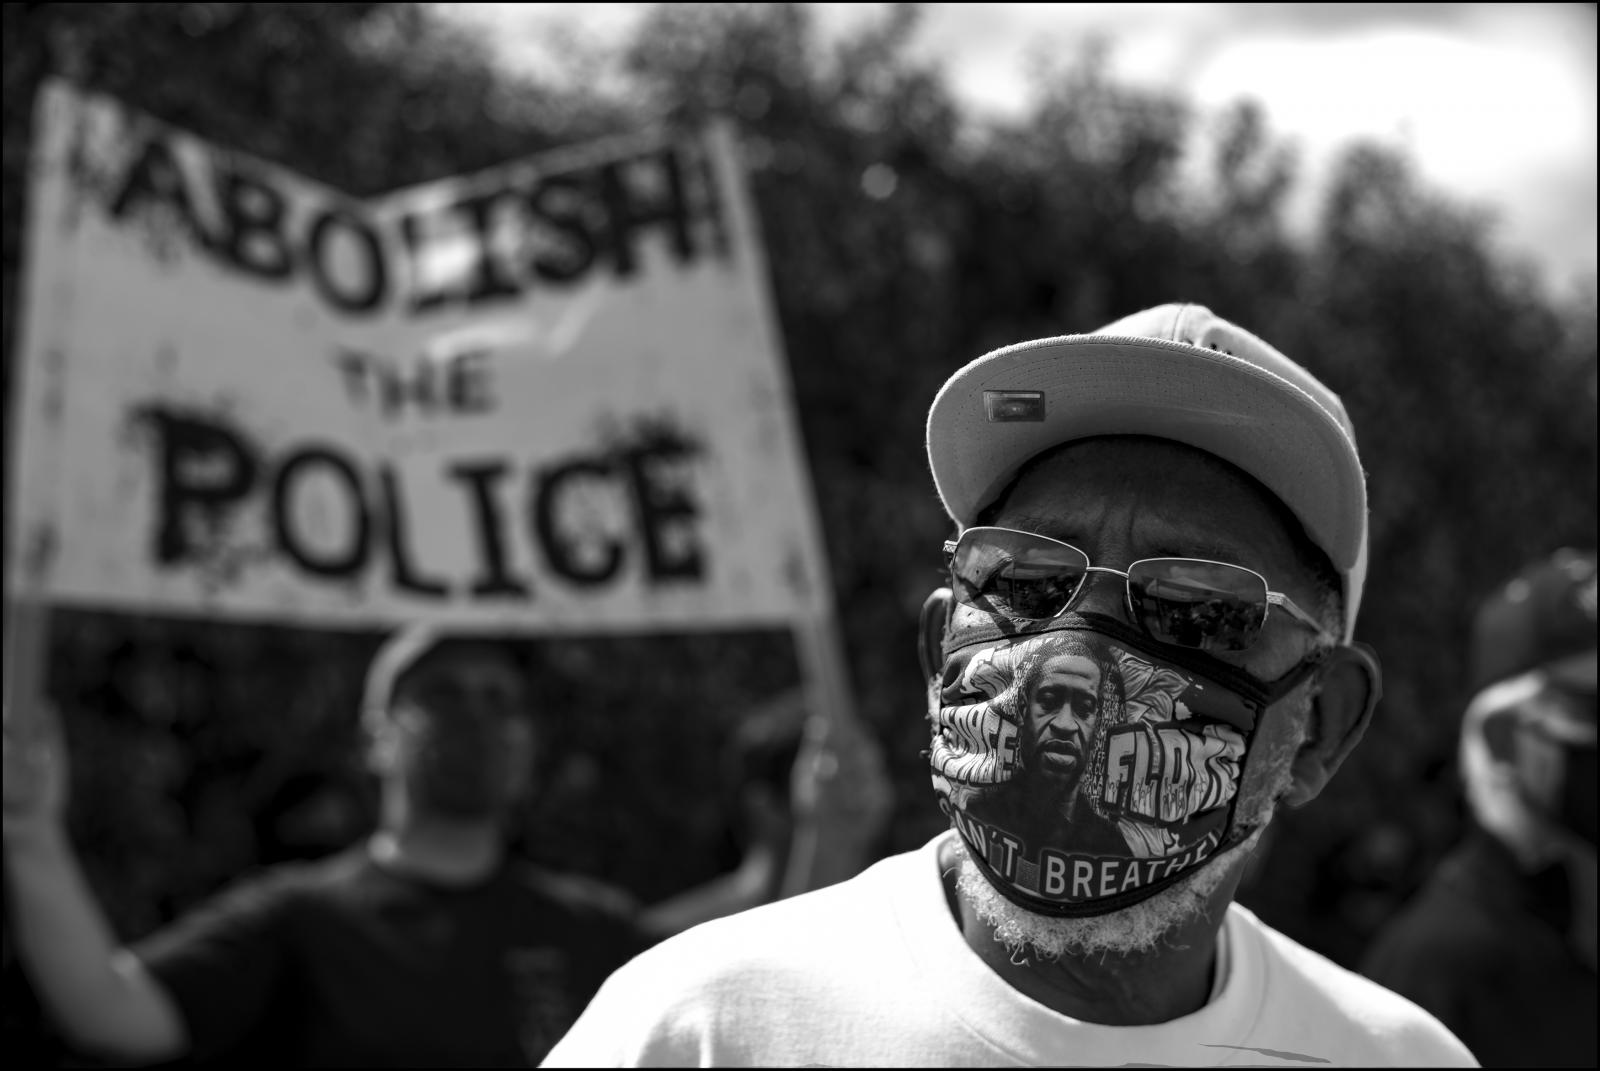 Elderly protestor, face covered with George Floyd mask, Cochran Baptist Church in Mid-Wilshire area of Los Angeles, 06/06/2020.